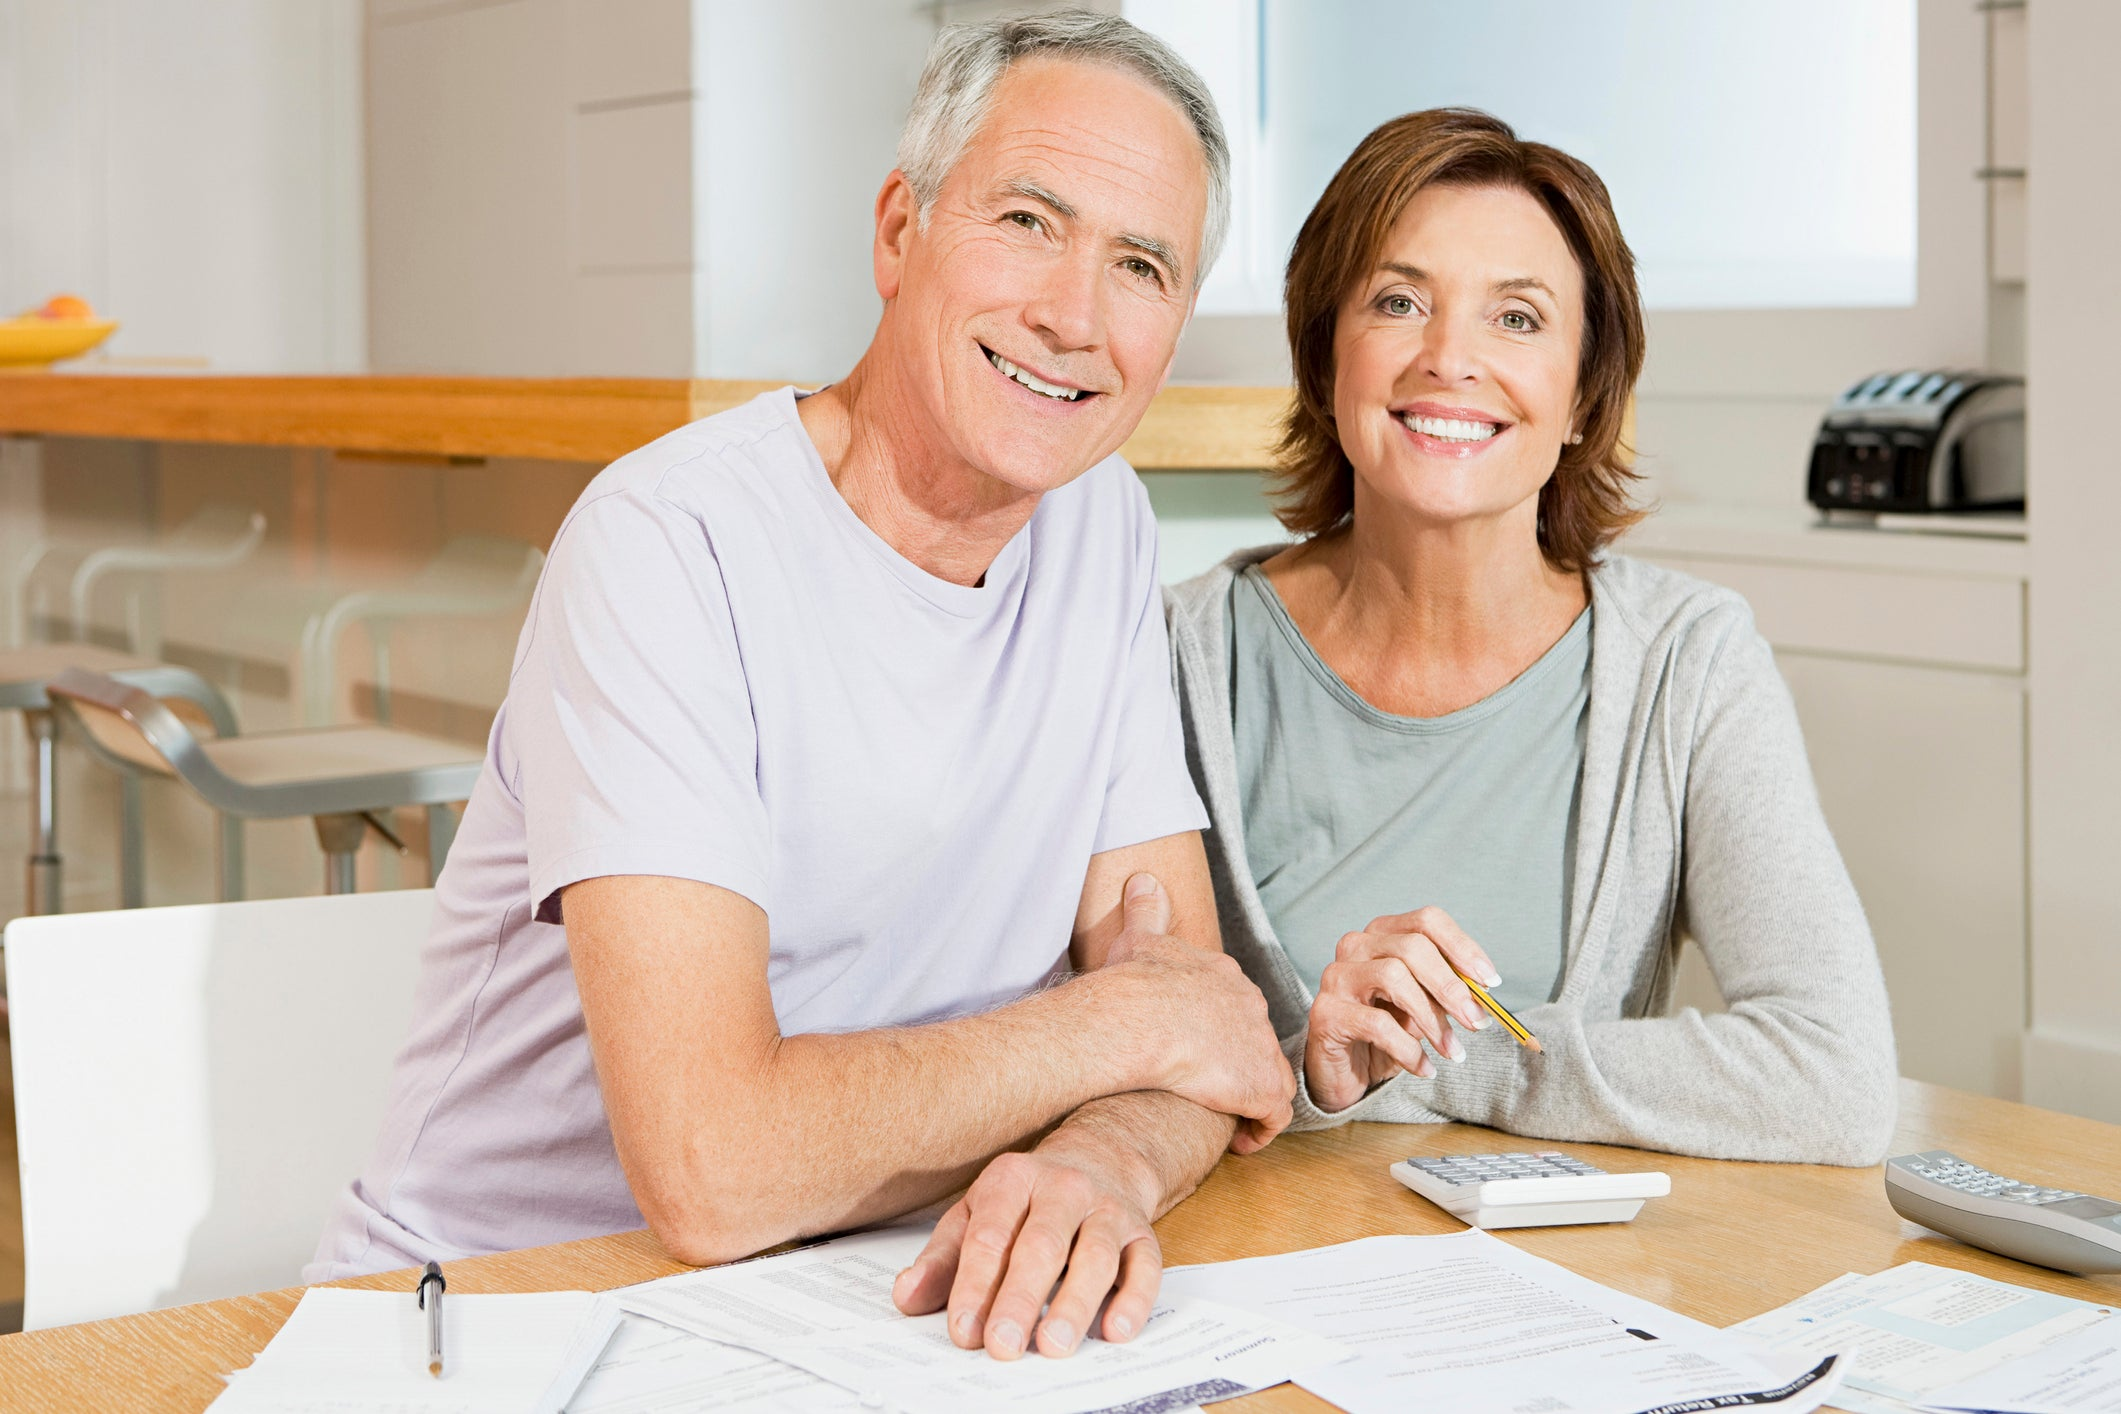 Ask Yourself These 3 Important Questions Before Retiring | The Motley Fool